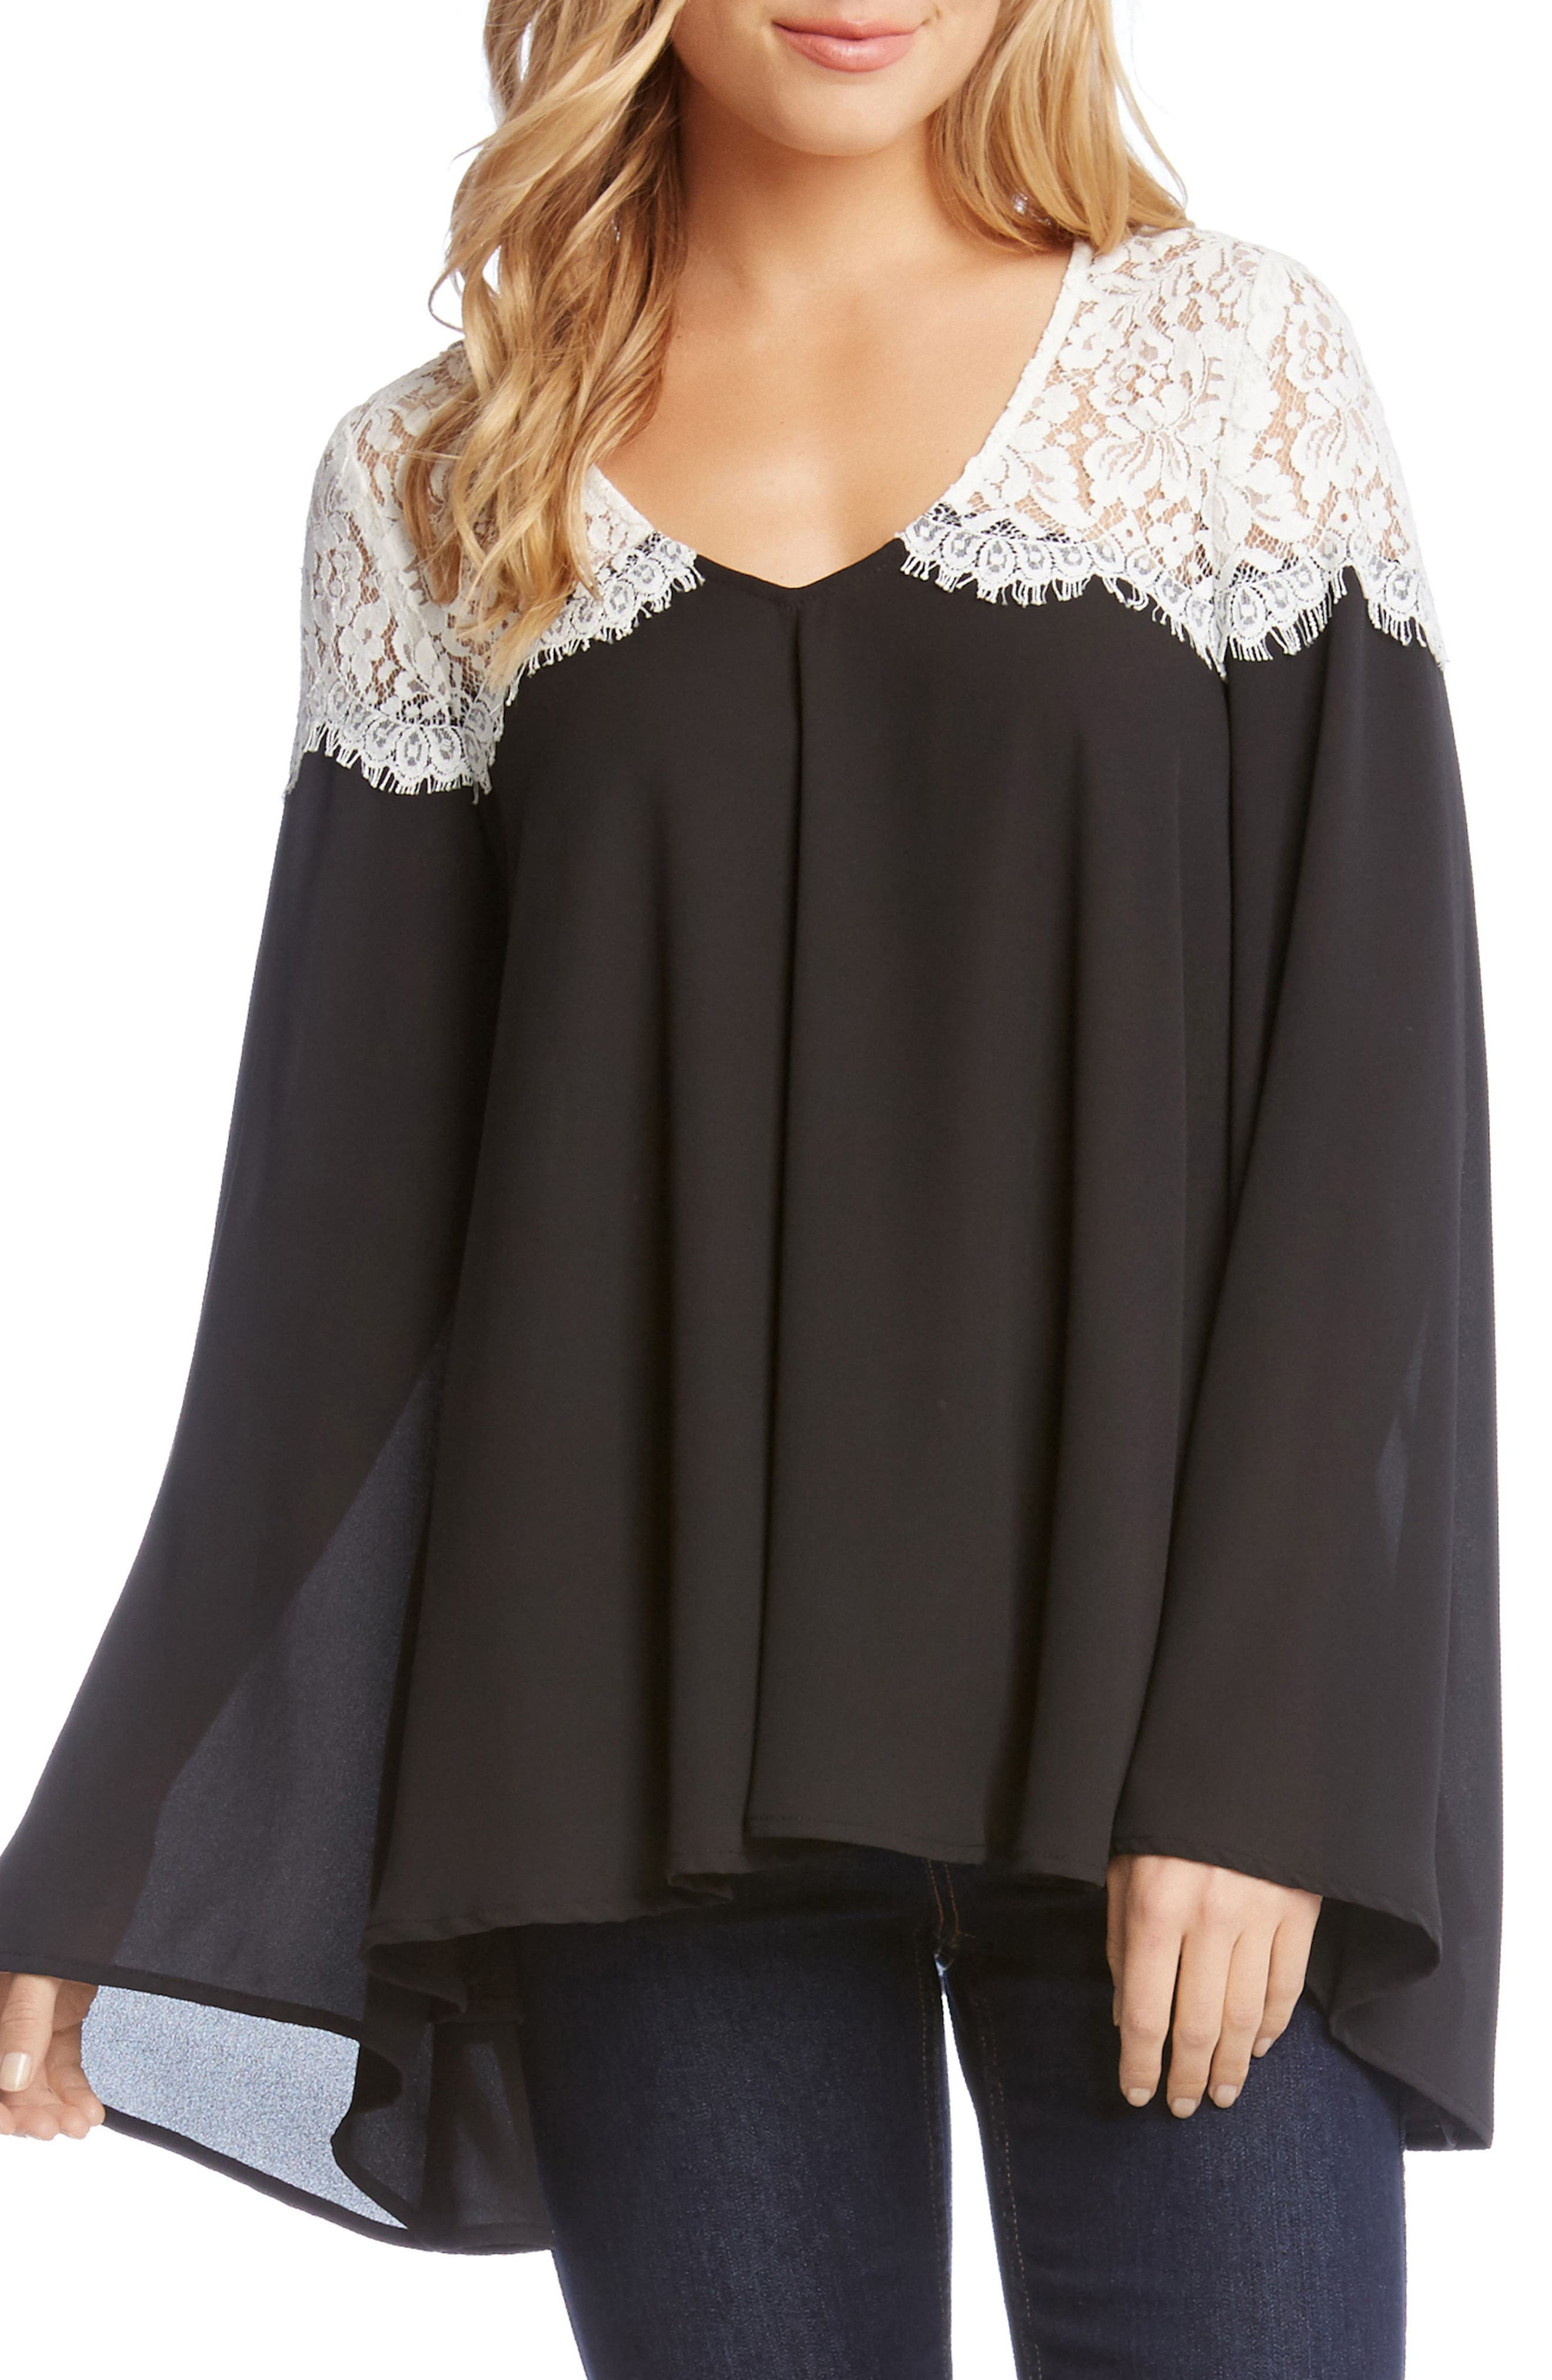 Contrast Lace Bell Sleeve Top,                         Main,                         color, Black/ Off White